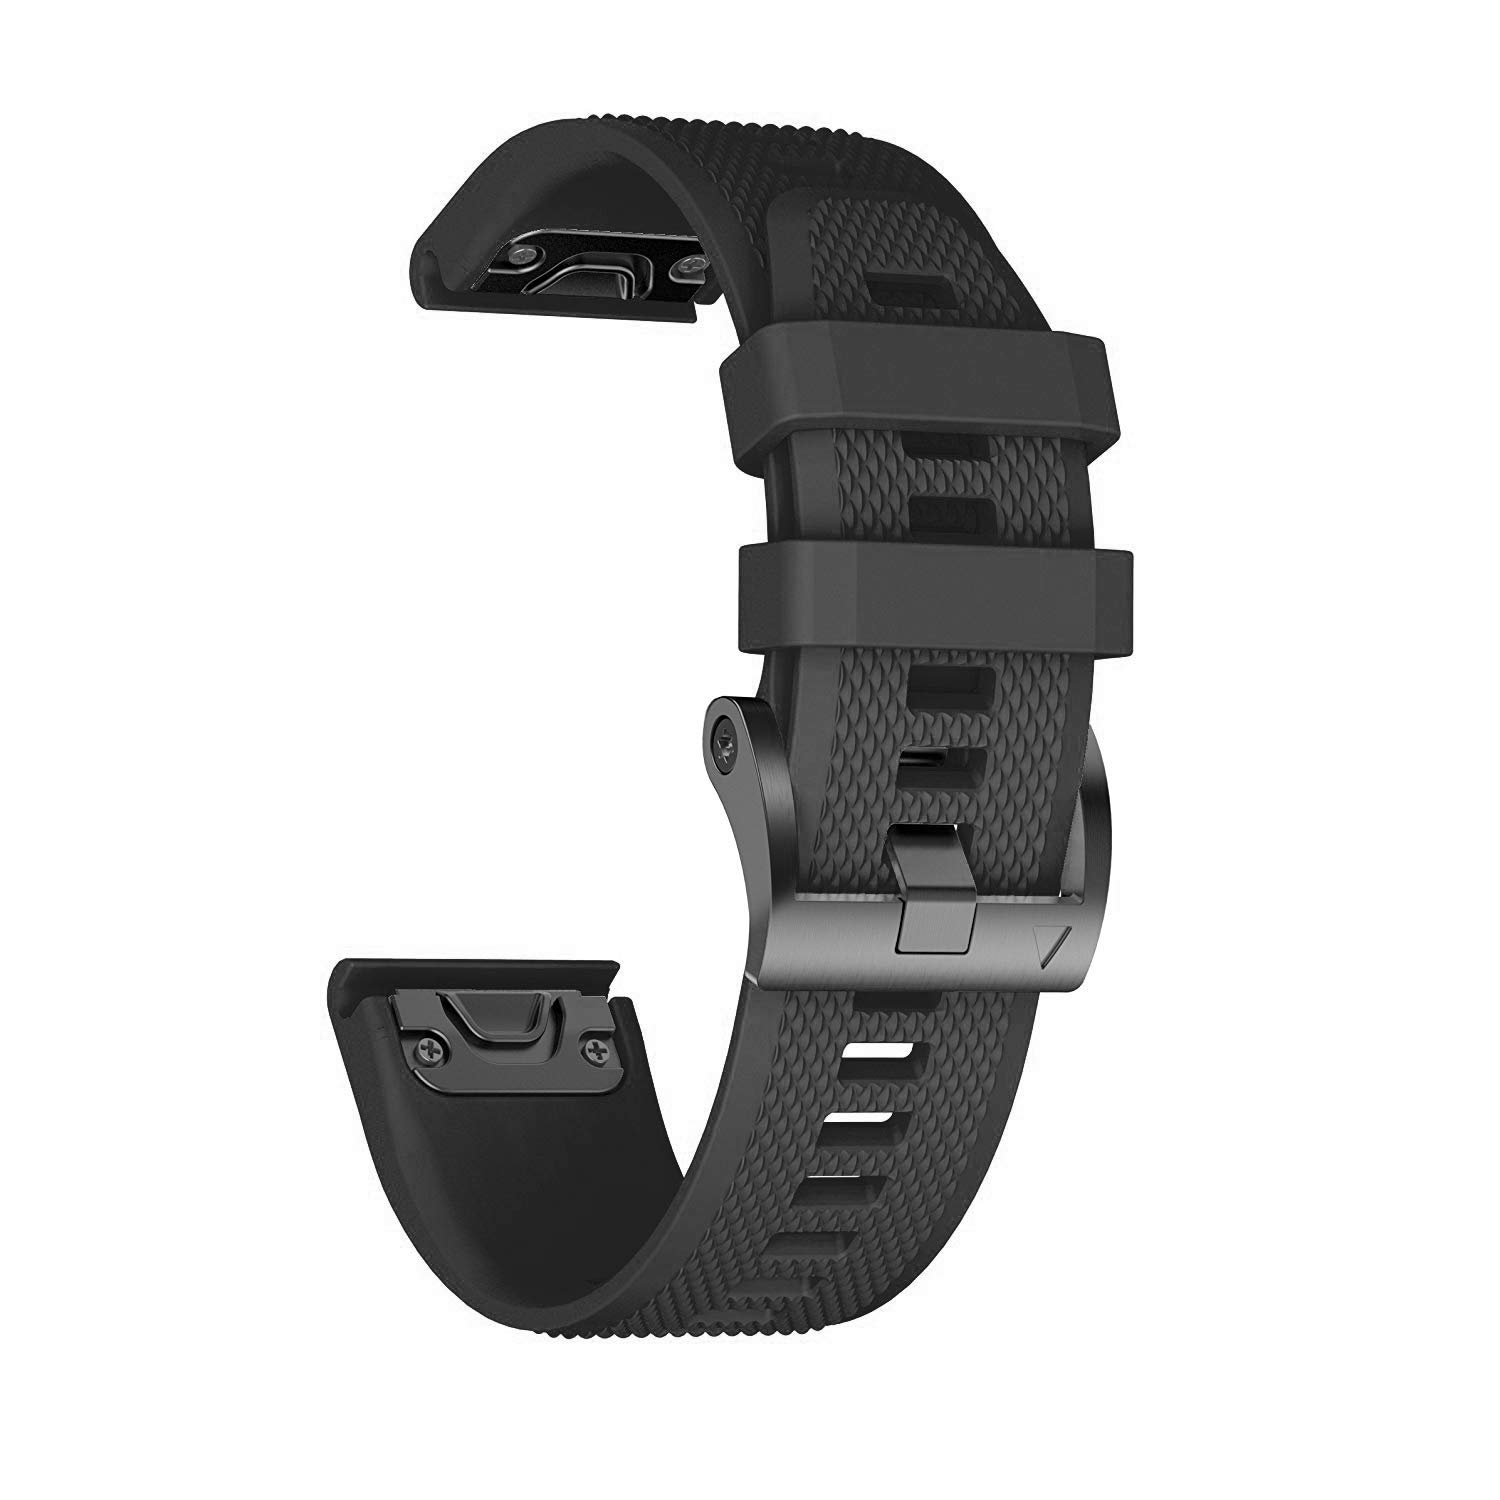 ANCOOL Compatible with Fenix 5 Band Easy Fit 22mm Width Soft Silicone Watch Strap Replacement for Fenix 5/Fenix 5 Plus/Forerunner 935/Approach S60/Quatix 5 - Black by ANCOOL